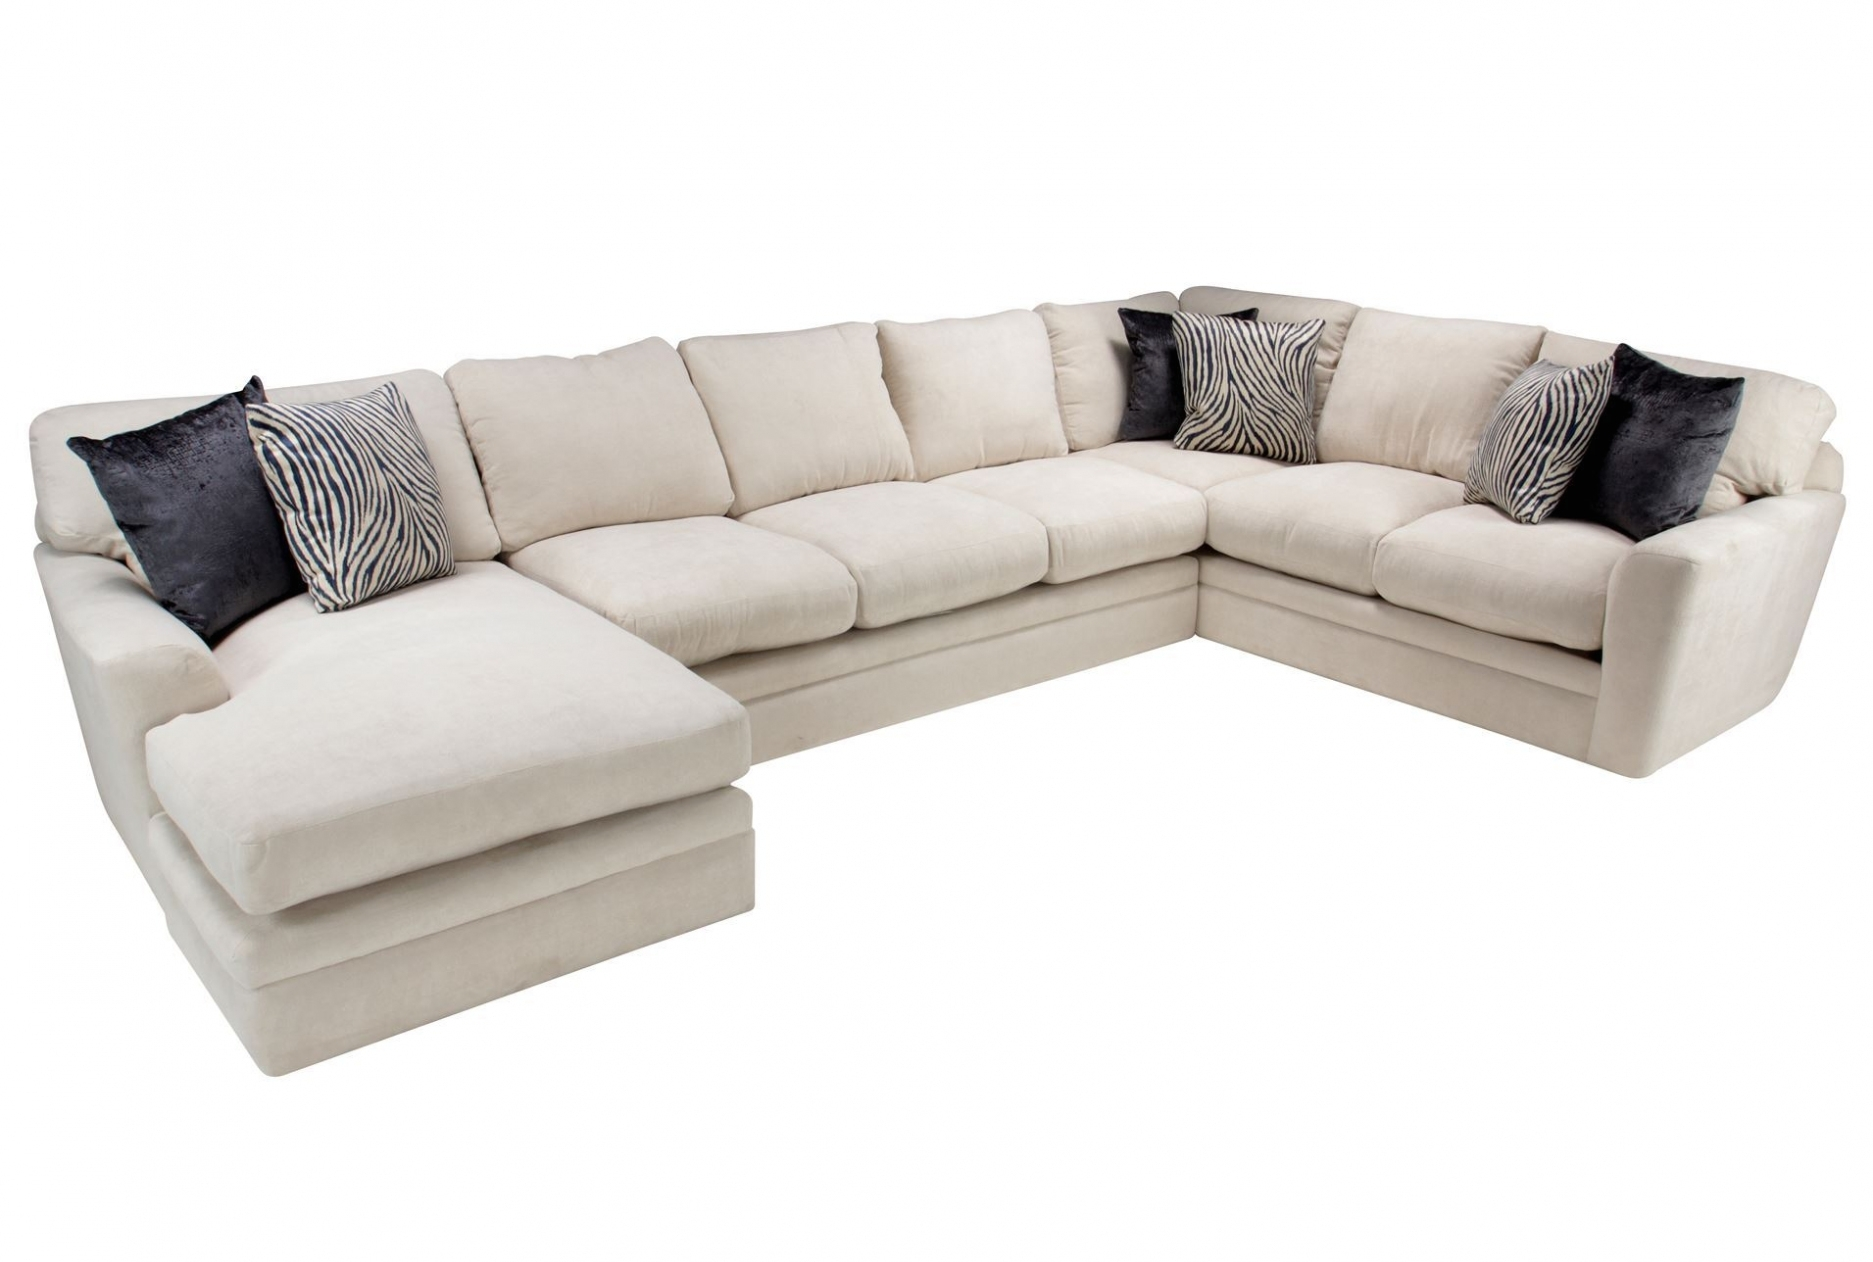 Featured Image of Living Spaces Sectional Sofas